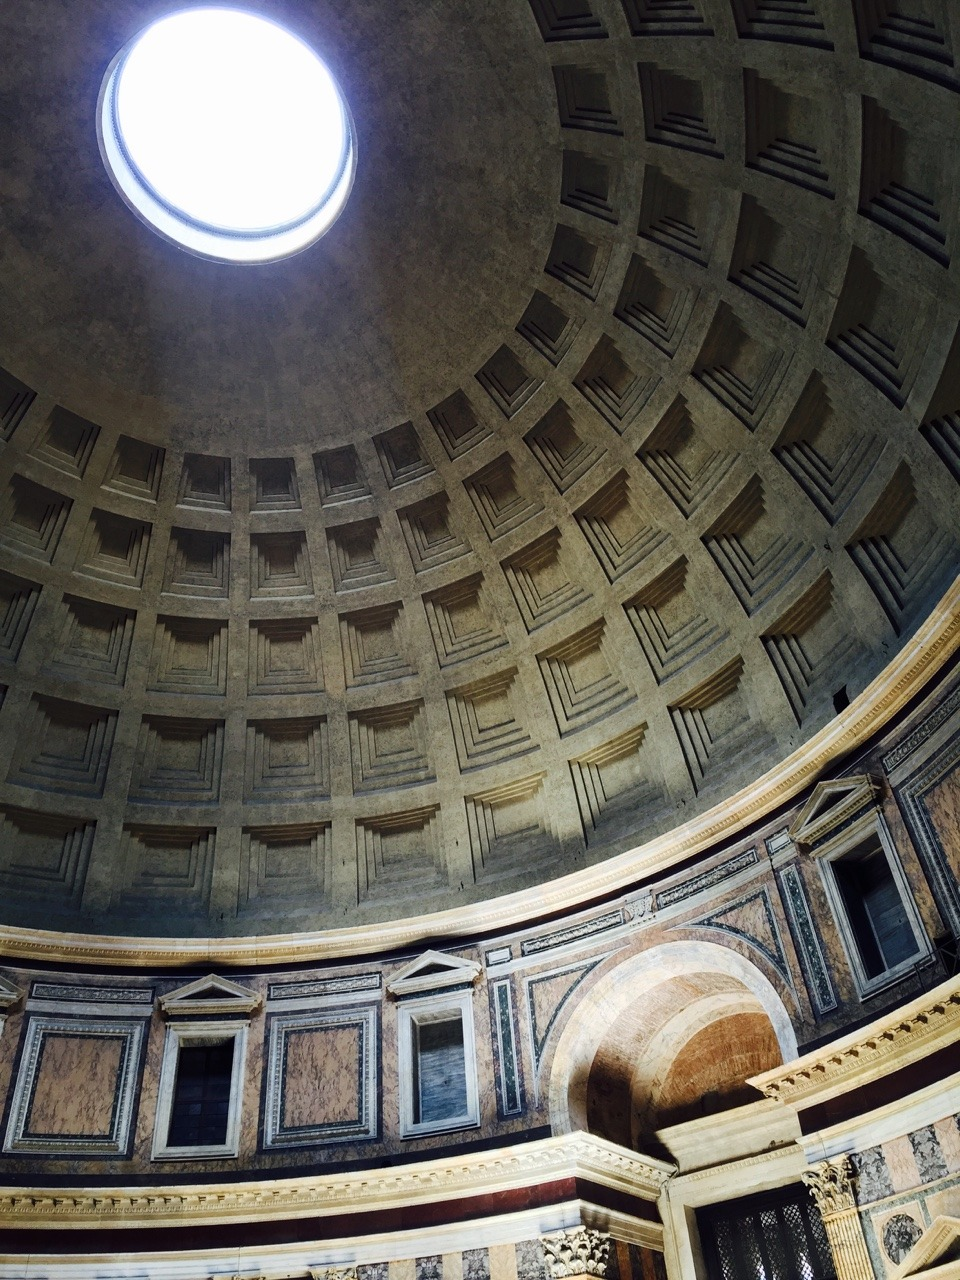 This ceiling is incredible. I had to come into the Pantheon a couple of times just to admire the space.